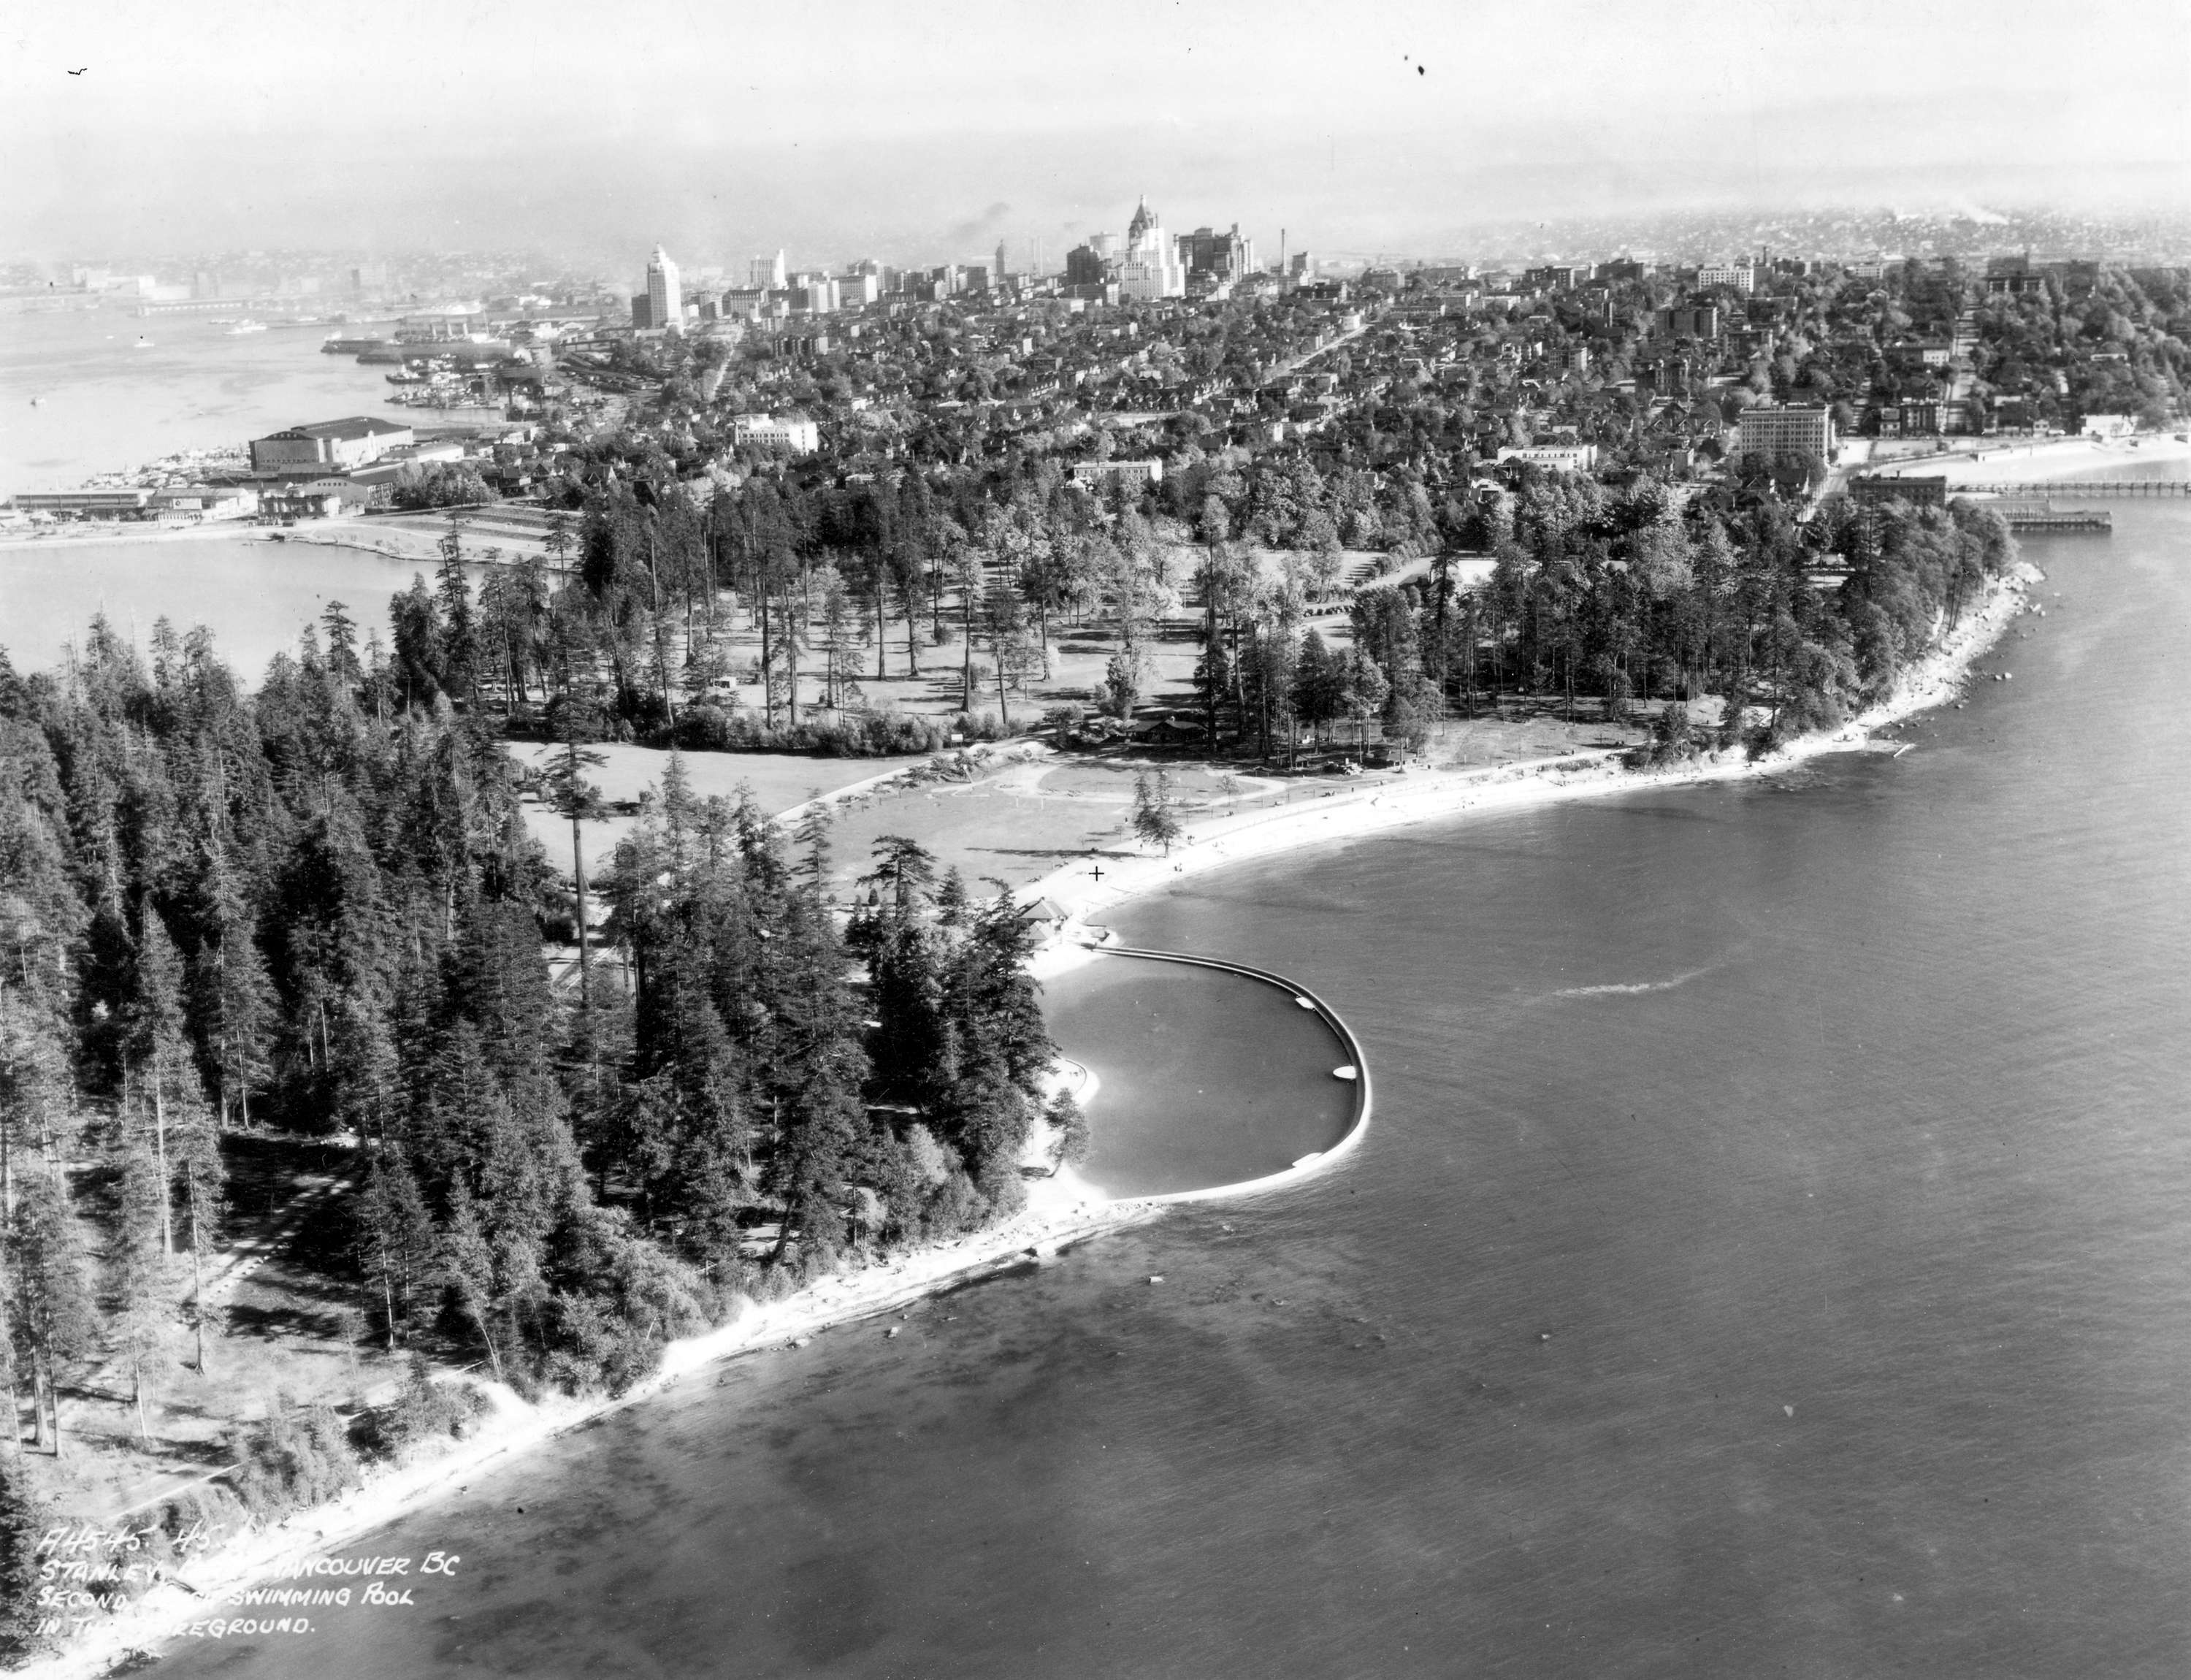 Aerial photo of Second Beach, 1930s. Source: City of Vancouver Archives, AM54-S4-: Air P104.